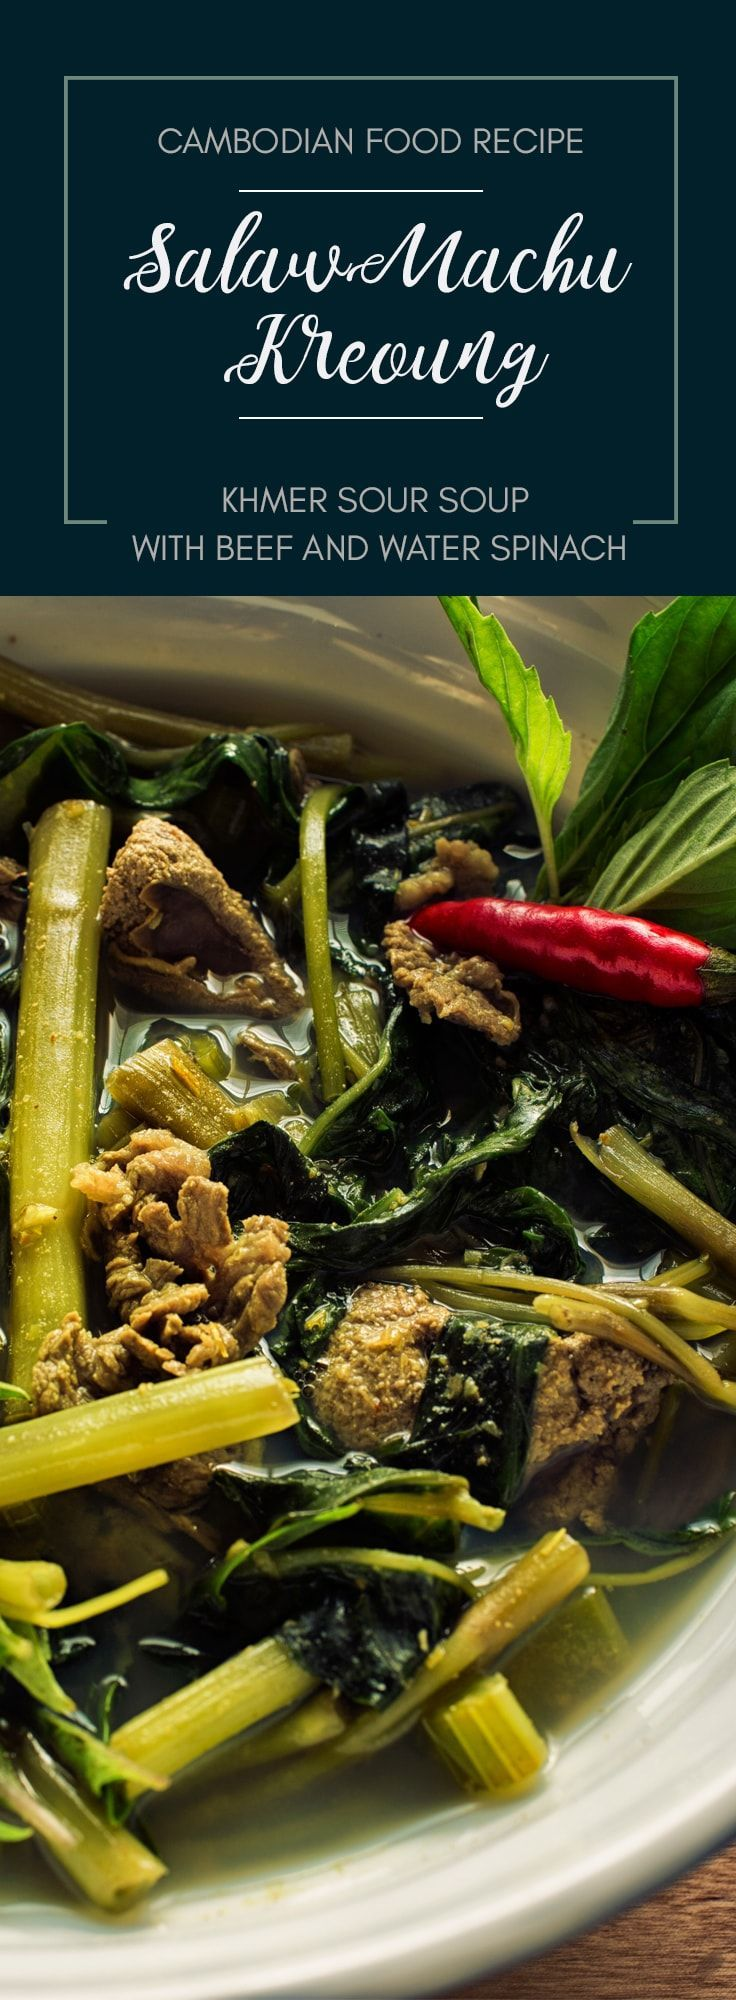 Salaw machu kroeung, a Cambodian food staple, is a mixture of salty, sour and spicy with a distinct Cambodian taste due to kroeung, a cambodian lemongrass, galagal,and turmeric mixture